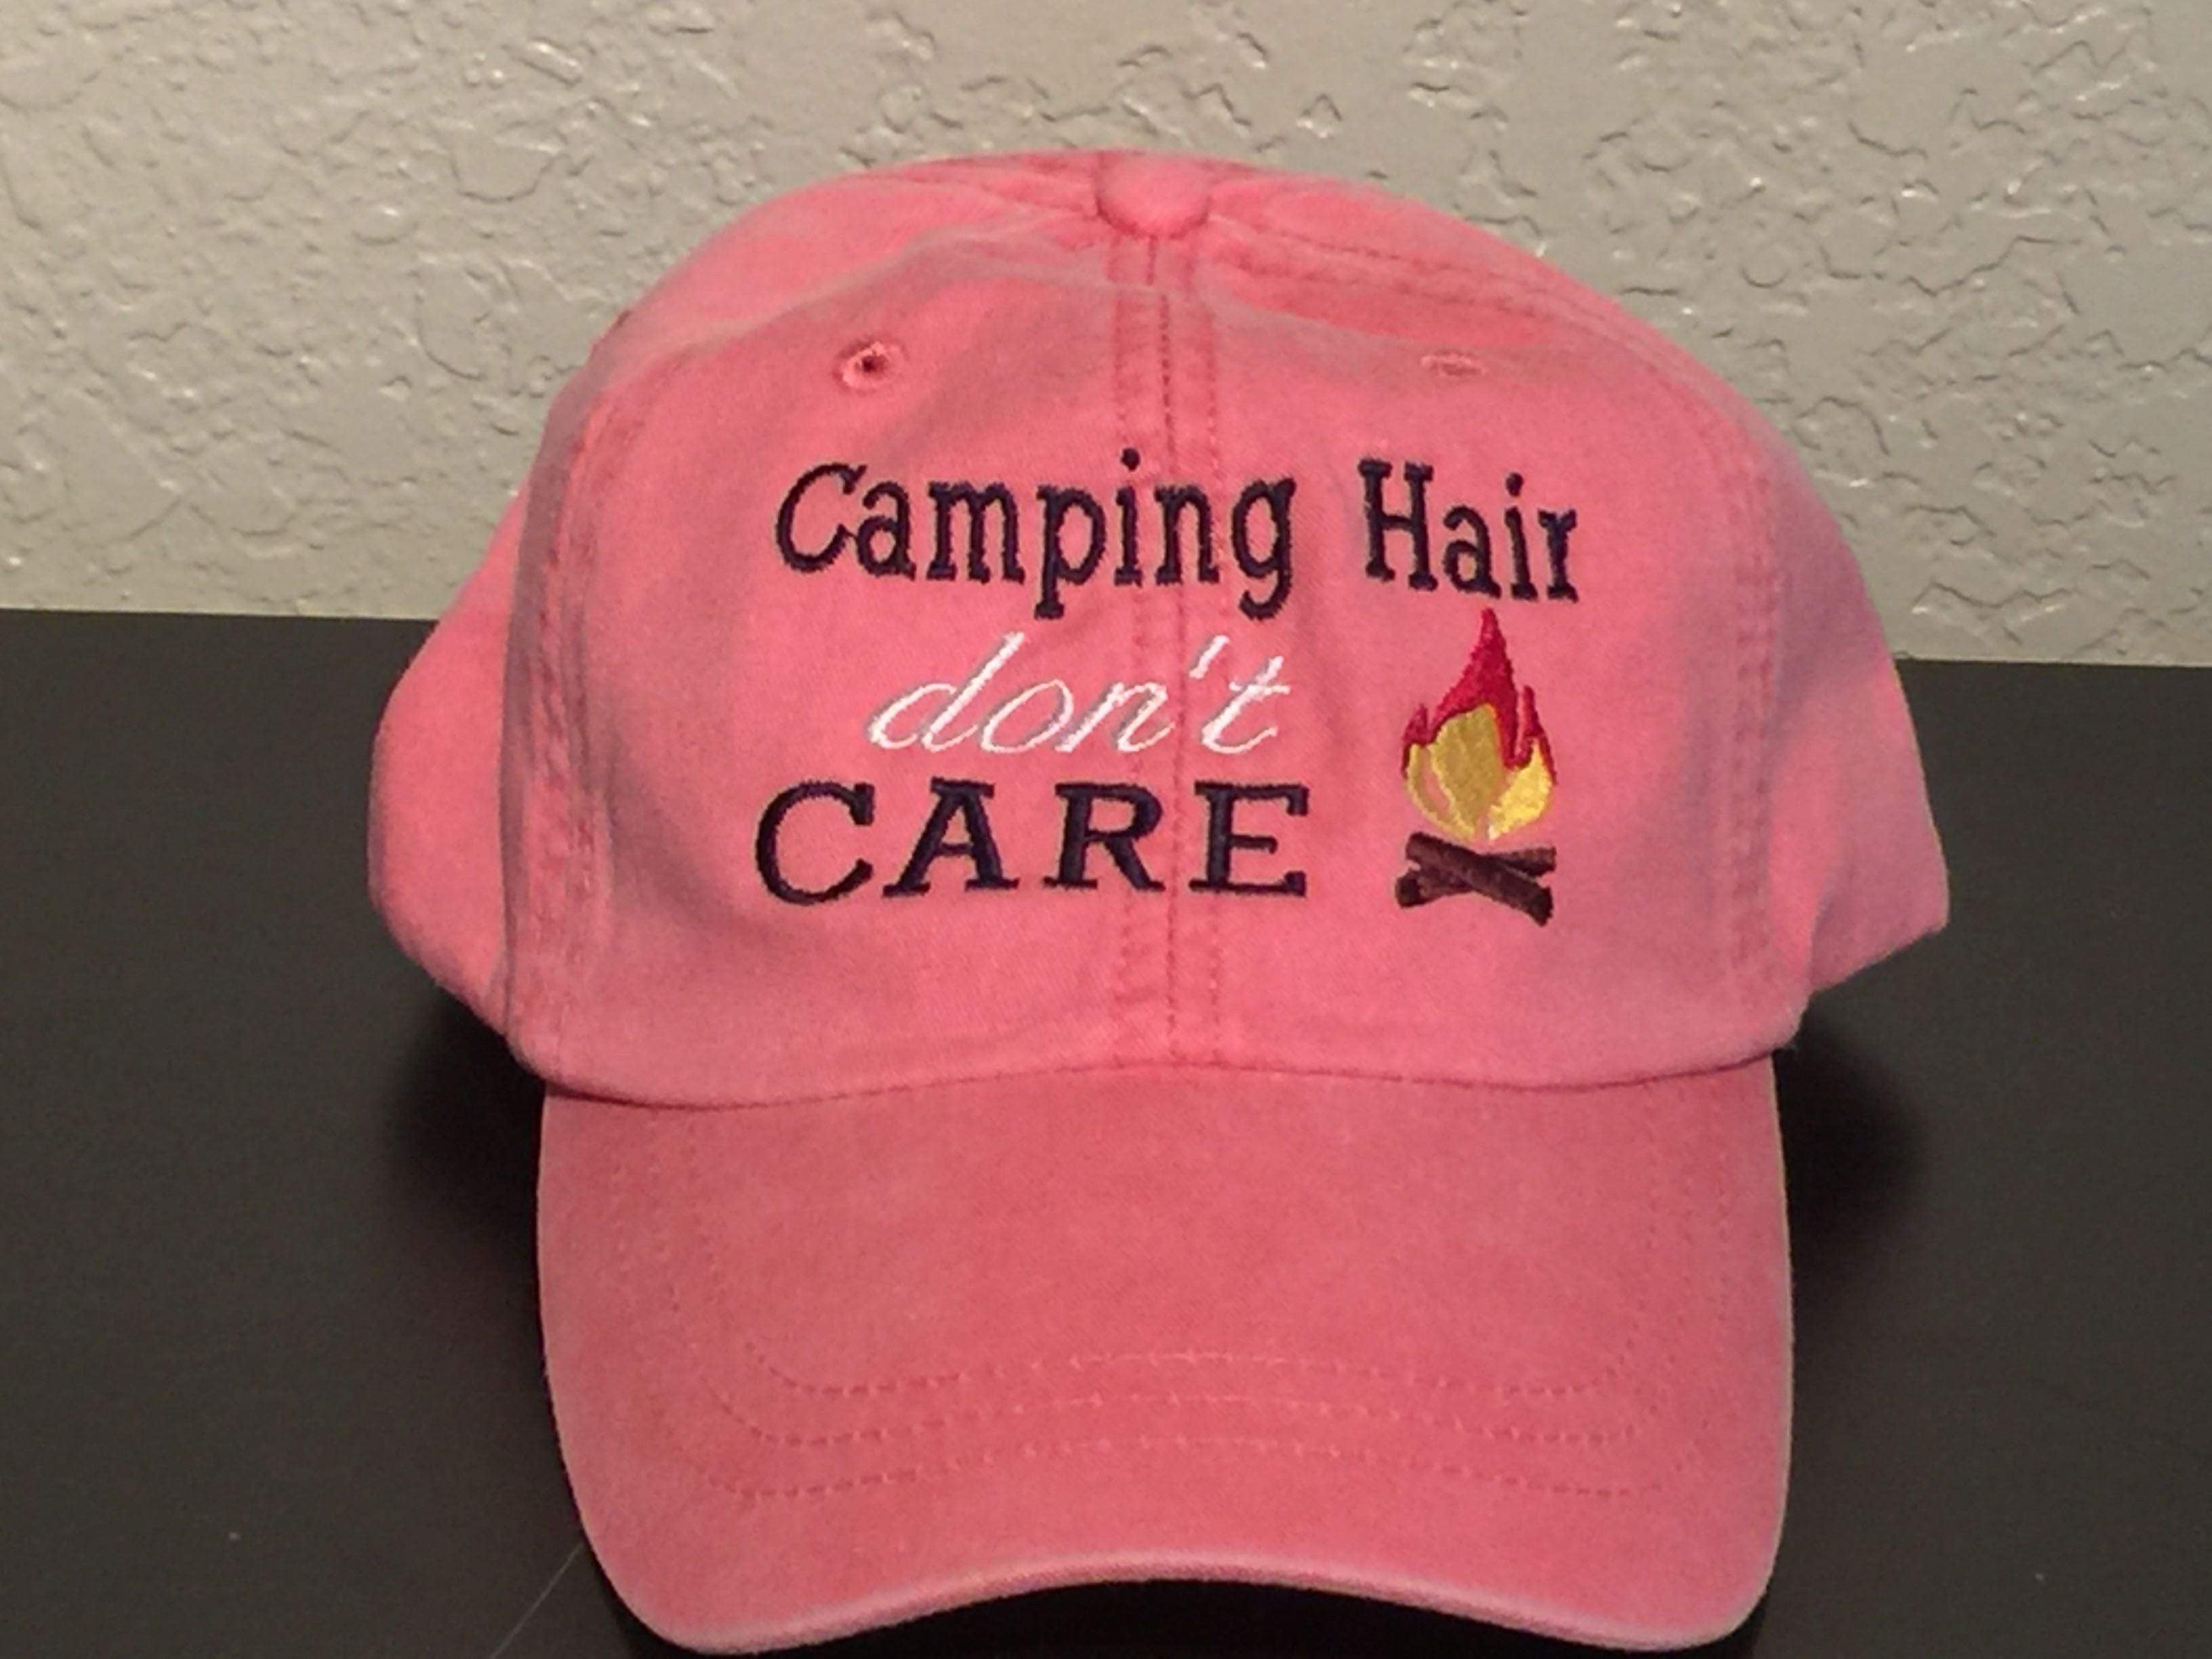 Camping Hair Don t Care Embroidered Baseball Cap – CoHo Bags 8c10e7c2278